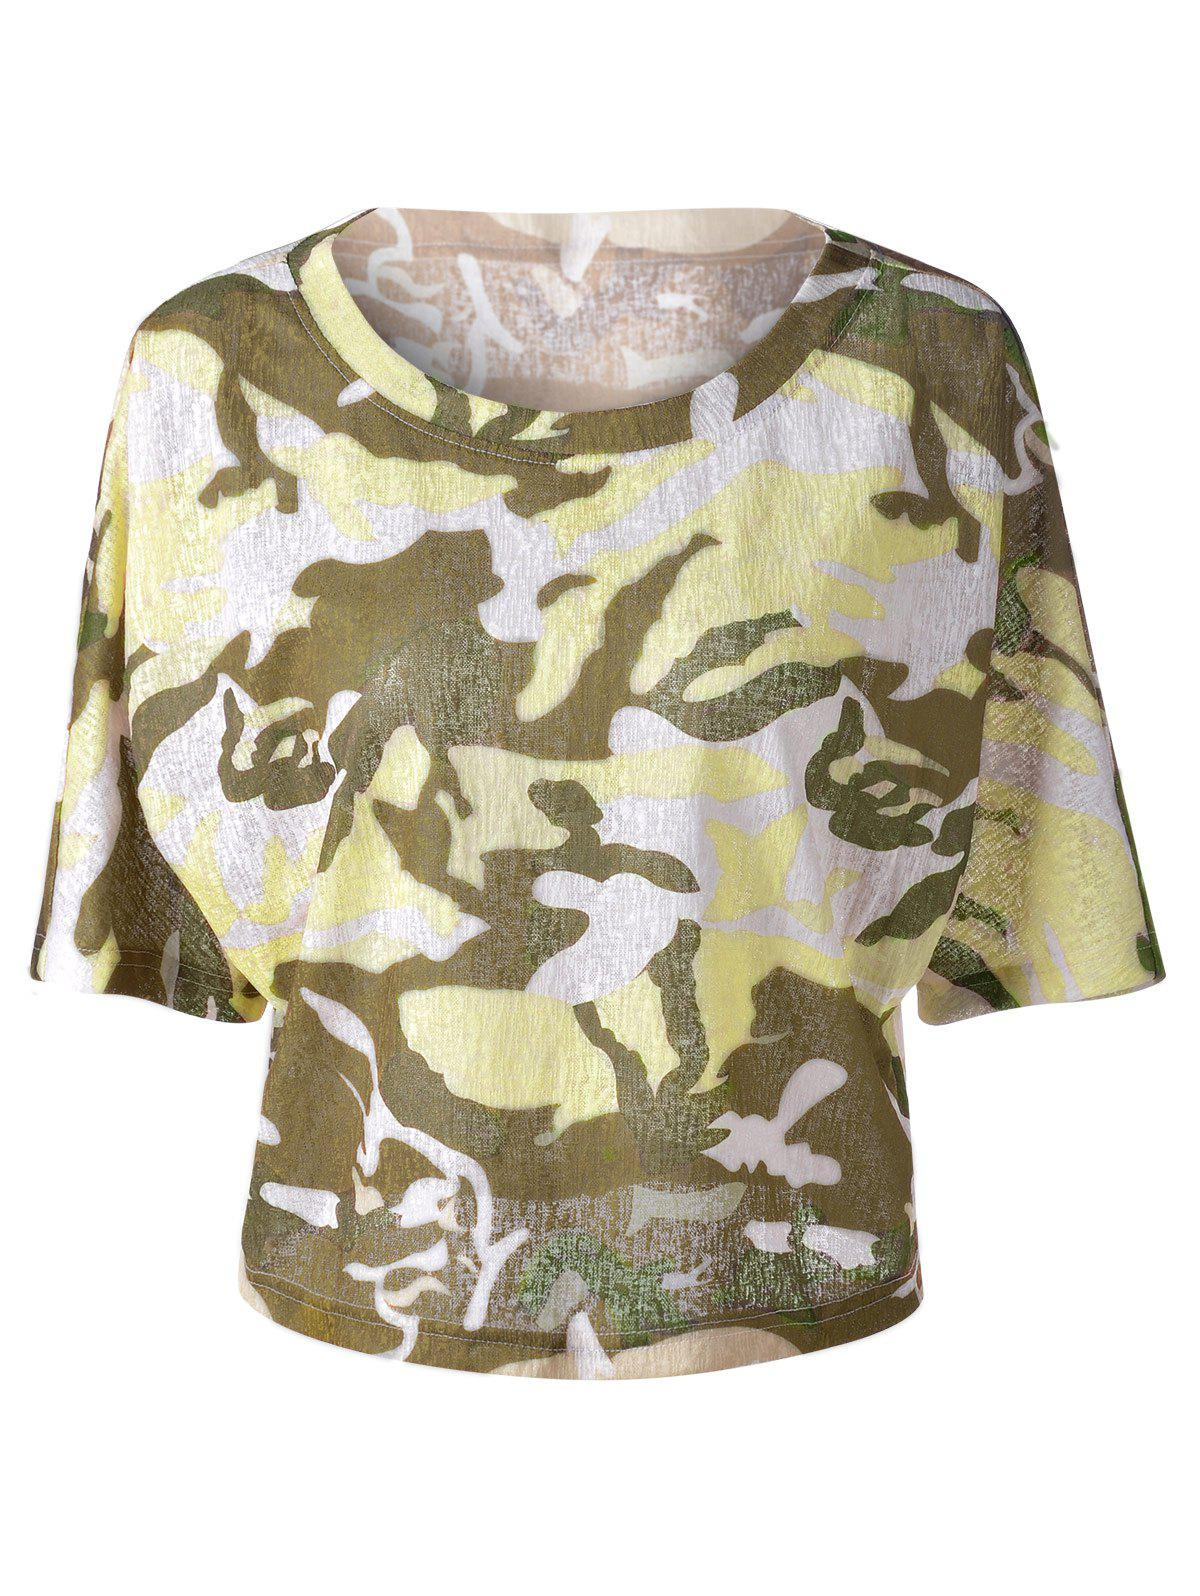 Shops Fashionable  Round Collar 3/4 Sleeve Camouflage T-shirt